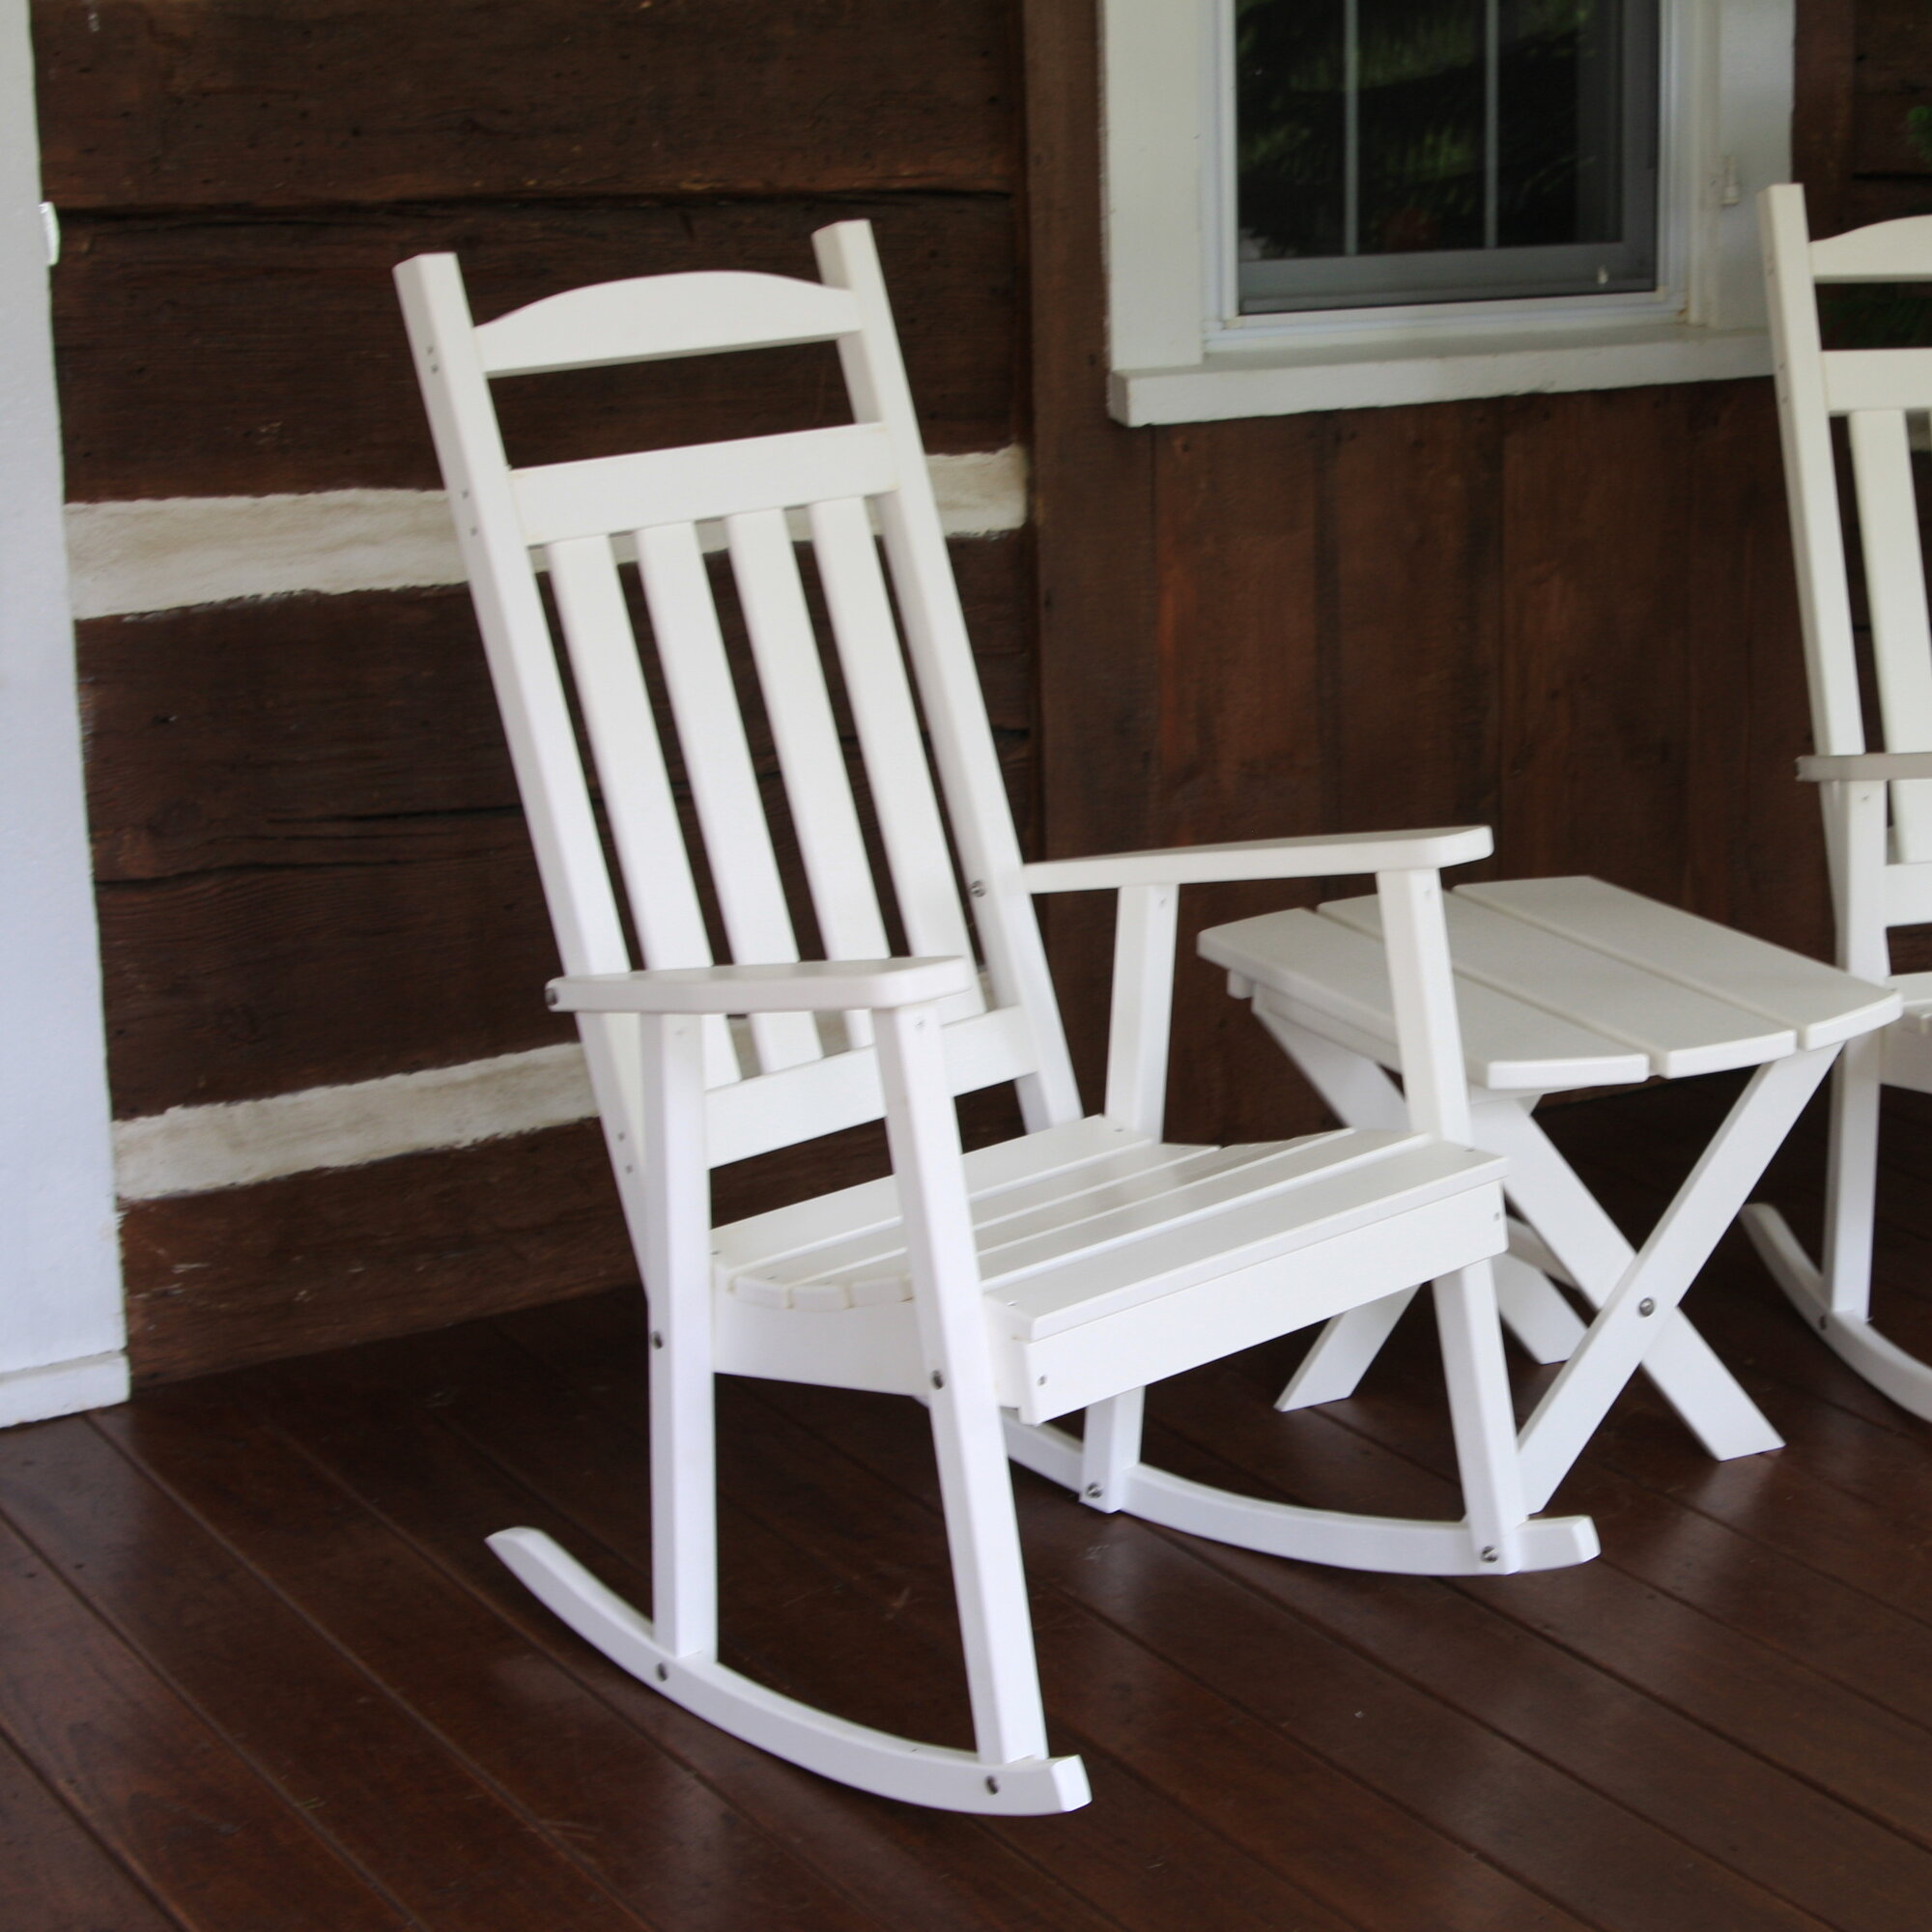 Details About A&L Furniture Classic Porch Rocking Chair. Full resolution  file, nominally Width 2000 Height 2000 pixels, file with #2E1E16.